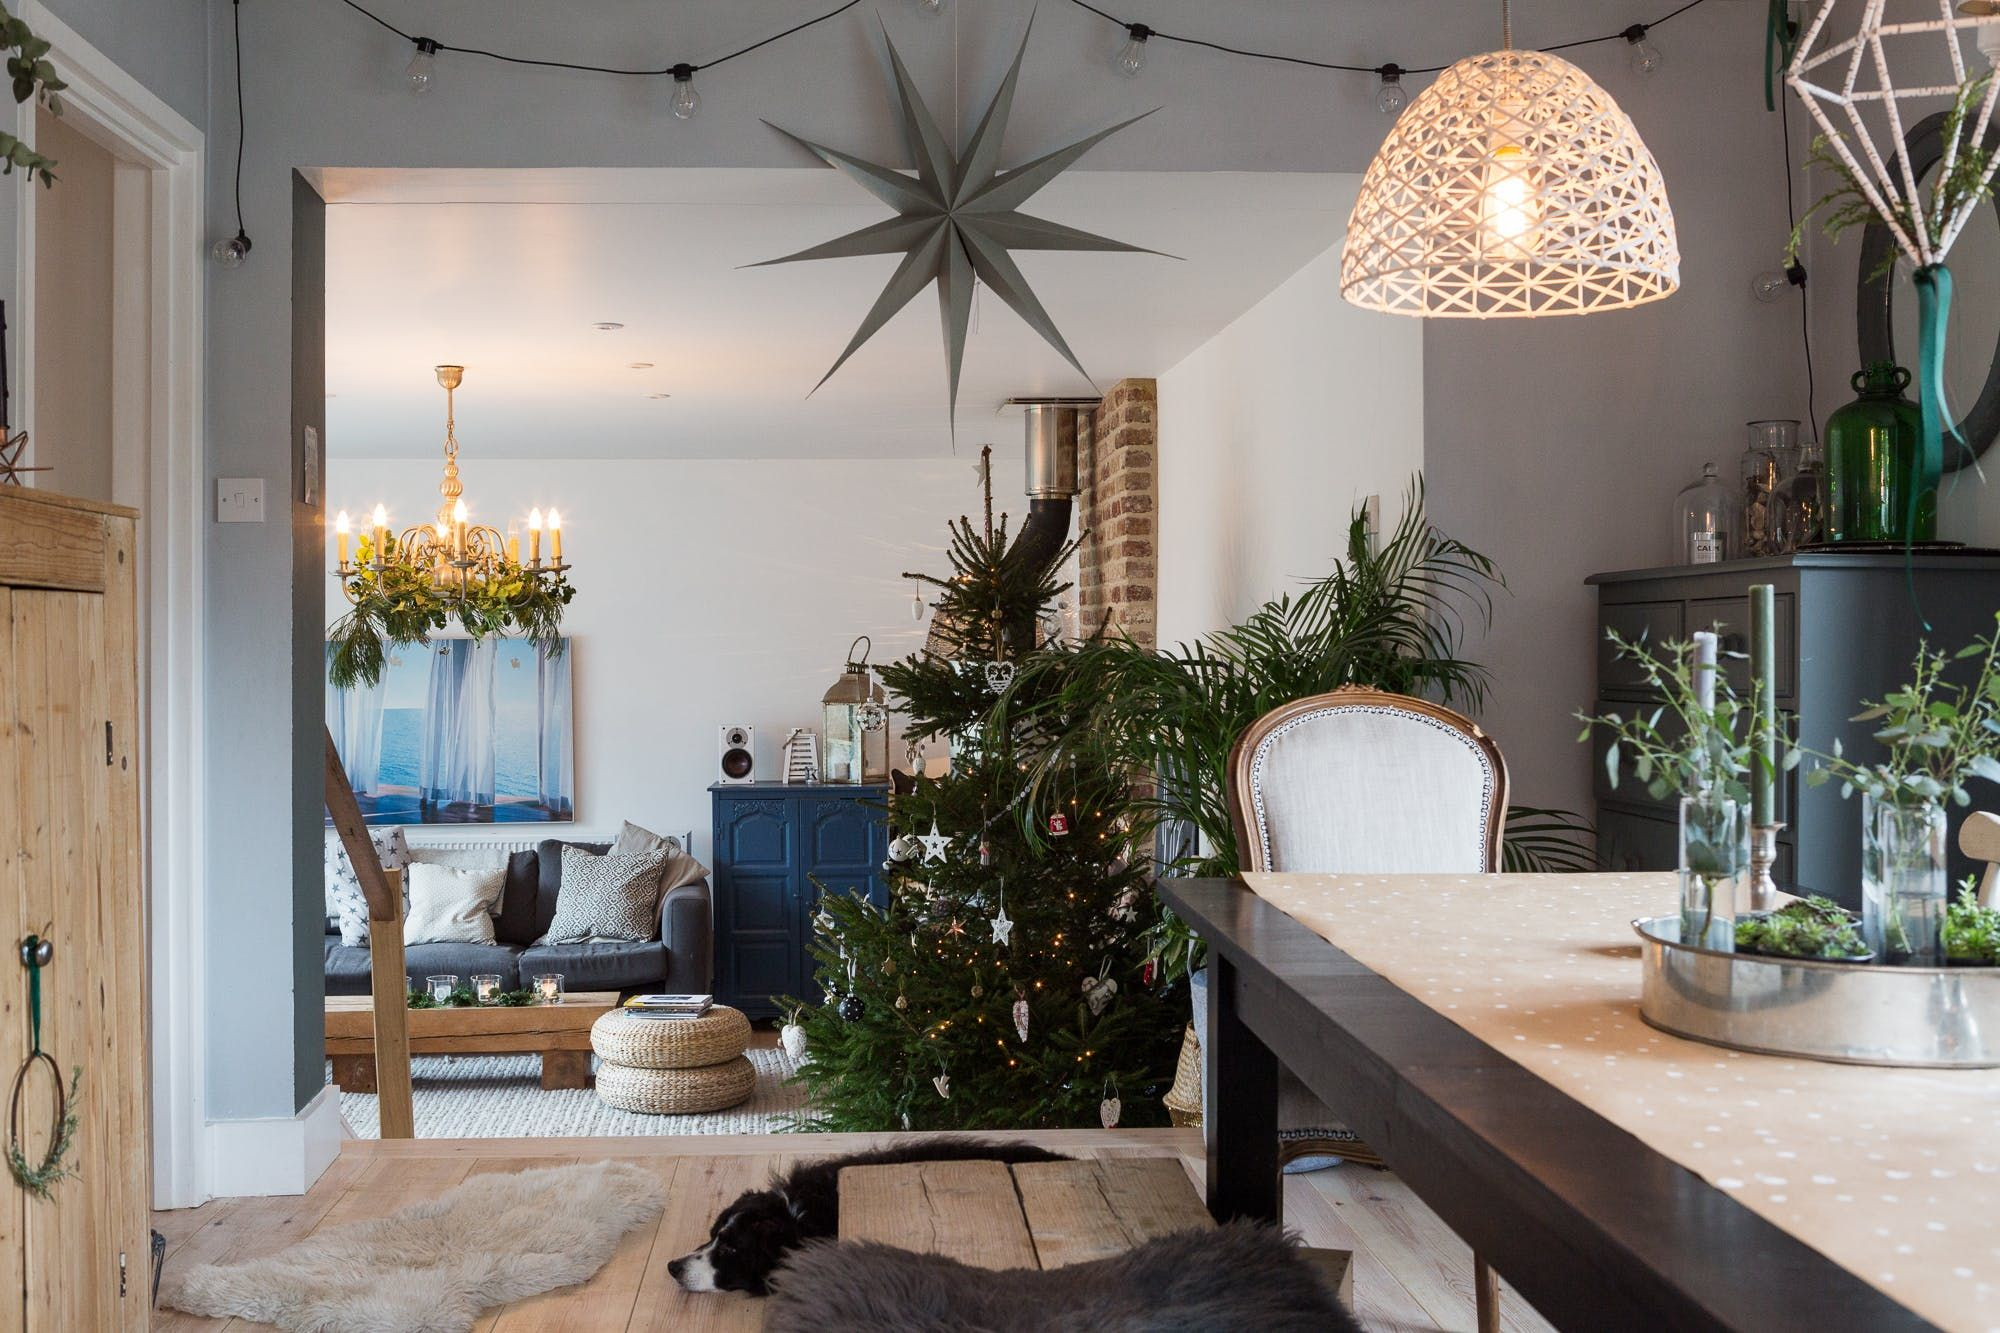 modern vintage bedroom ideas%0A Cozy Christmas Decor in a Rustic Modern English Home